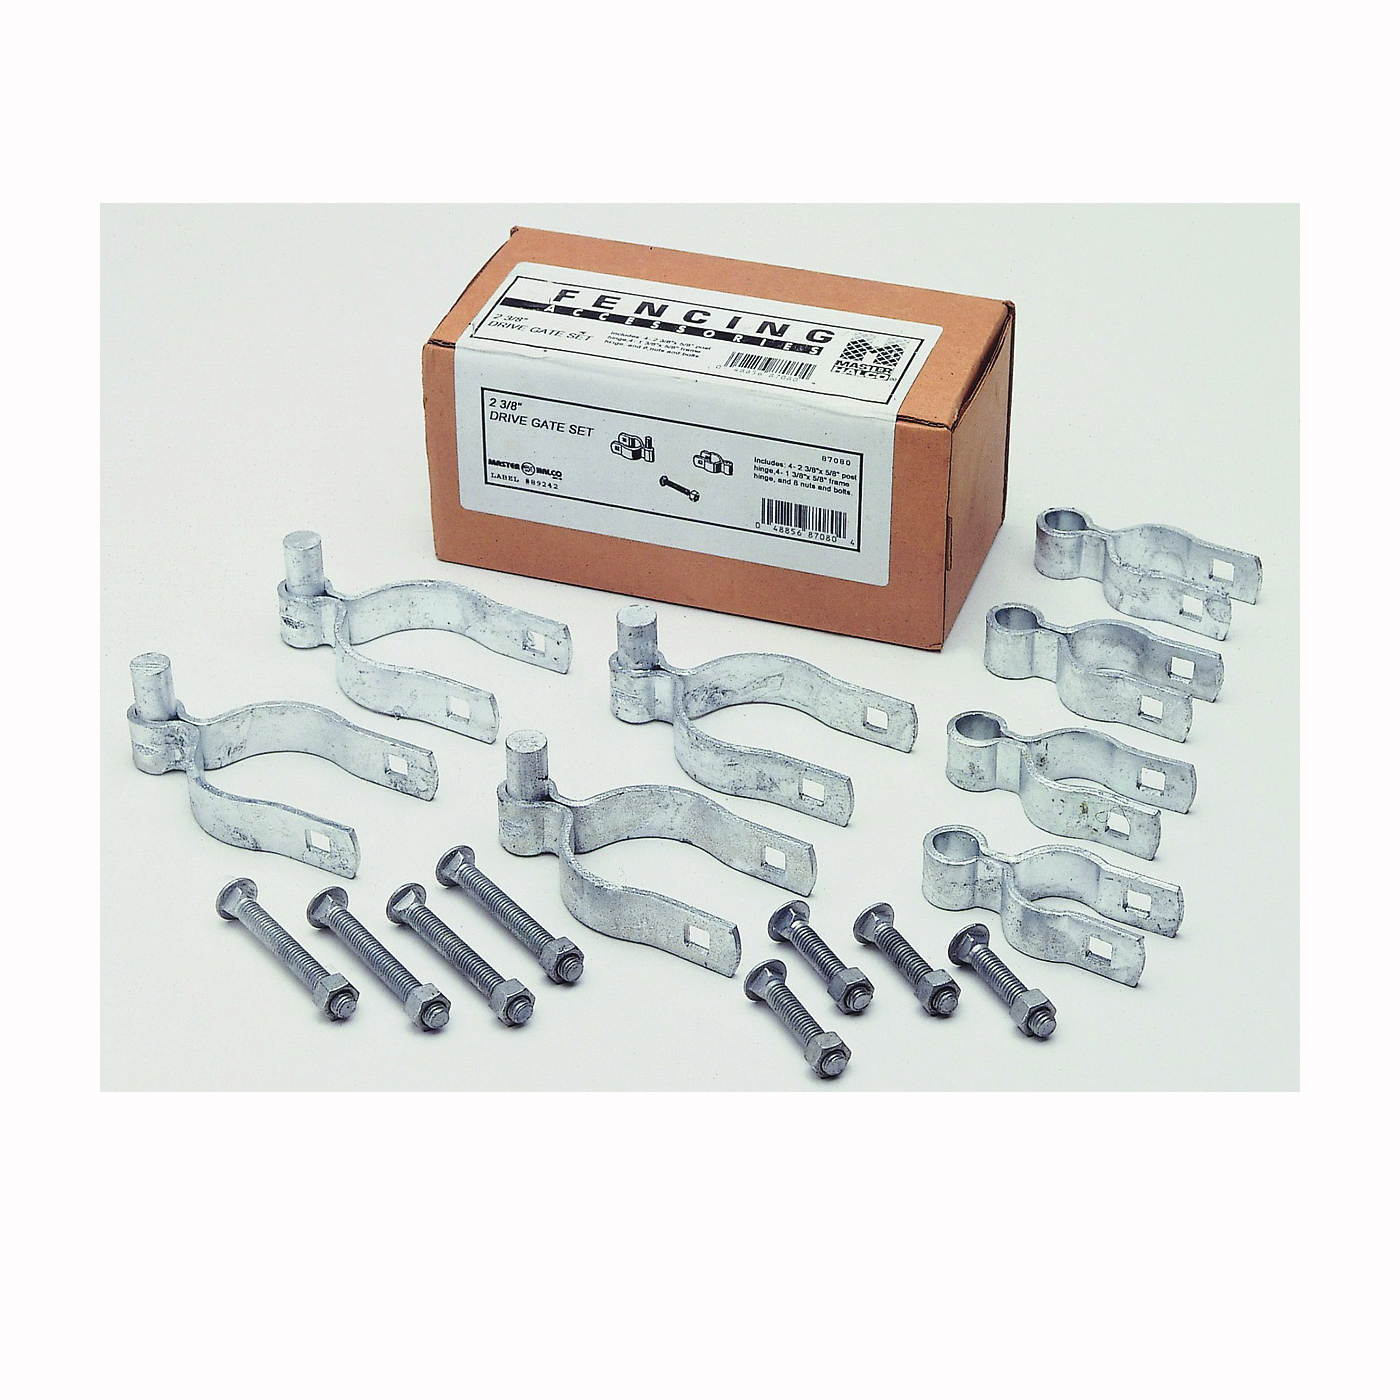 Picture of Stephens Pipe & Steel HD07120RP Gate Hardware Kit, Double-Drive, For: Chain Link Gate